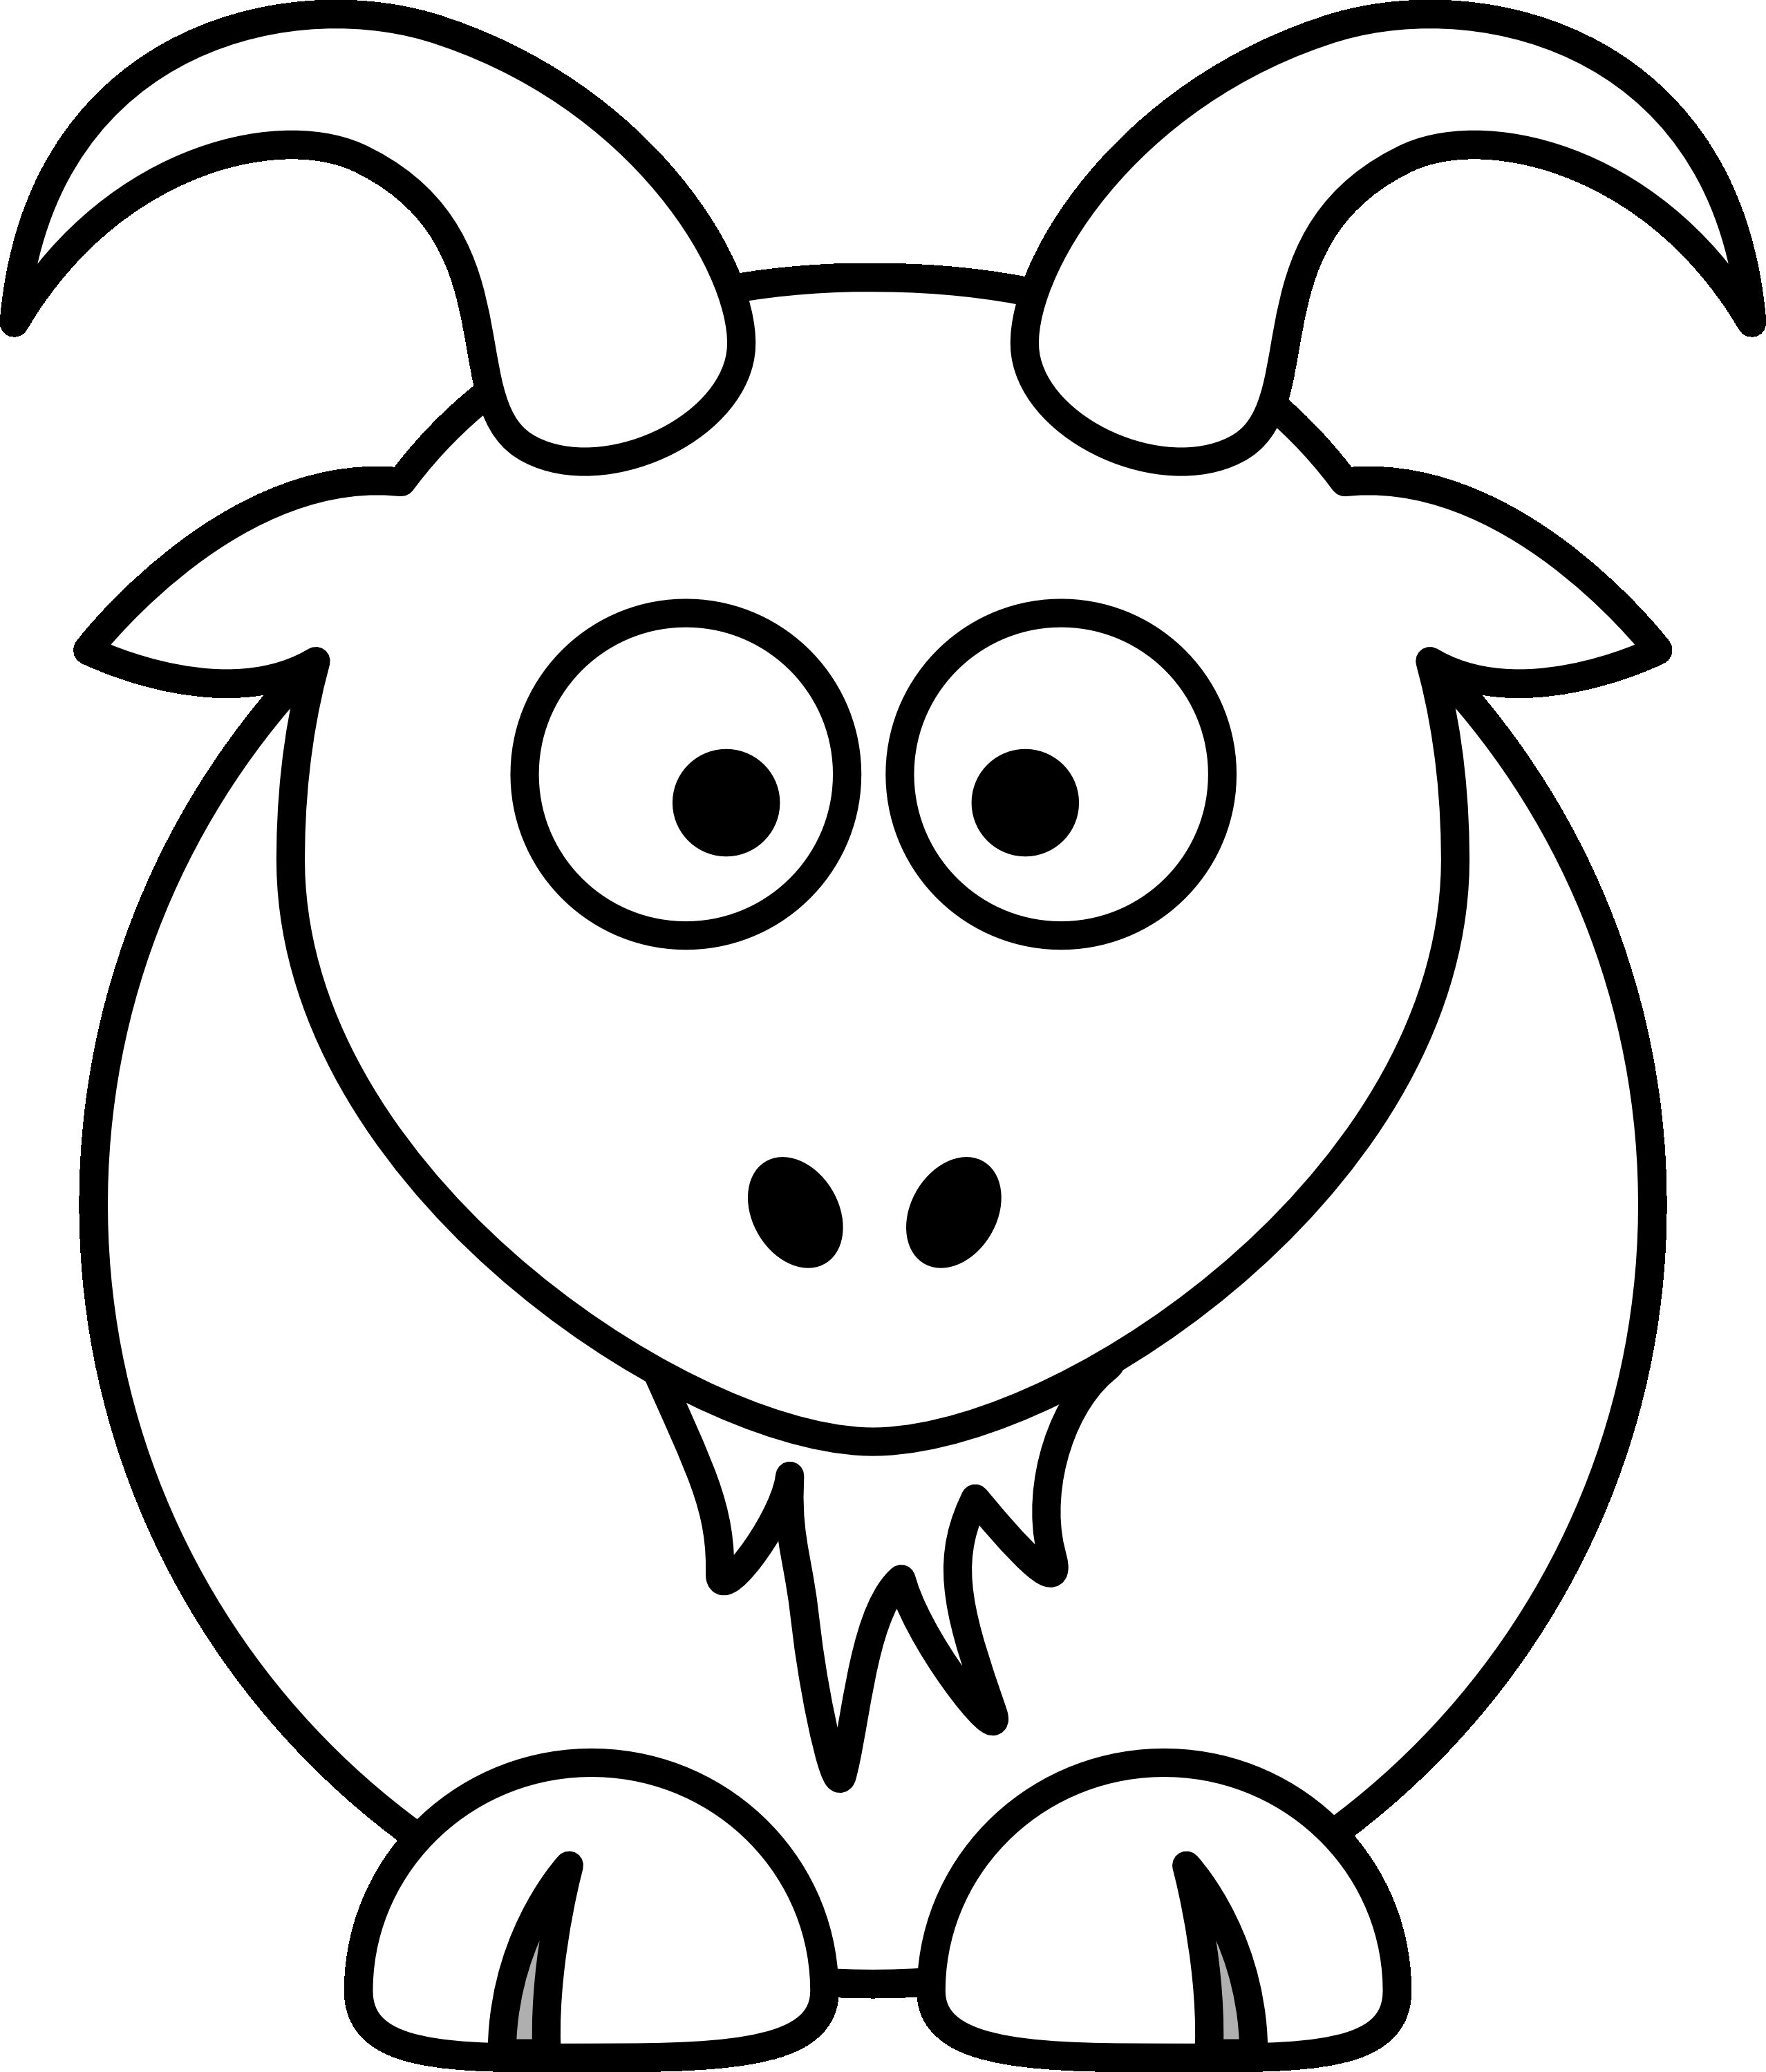 Goat Clipart Black And White Ideas